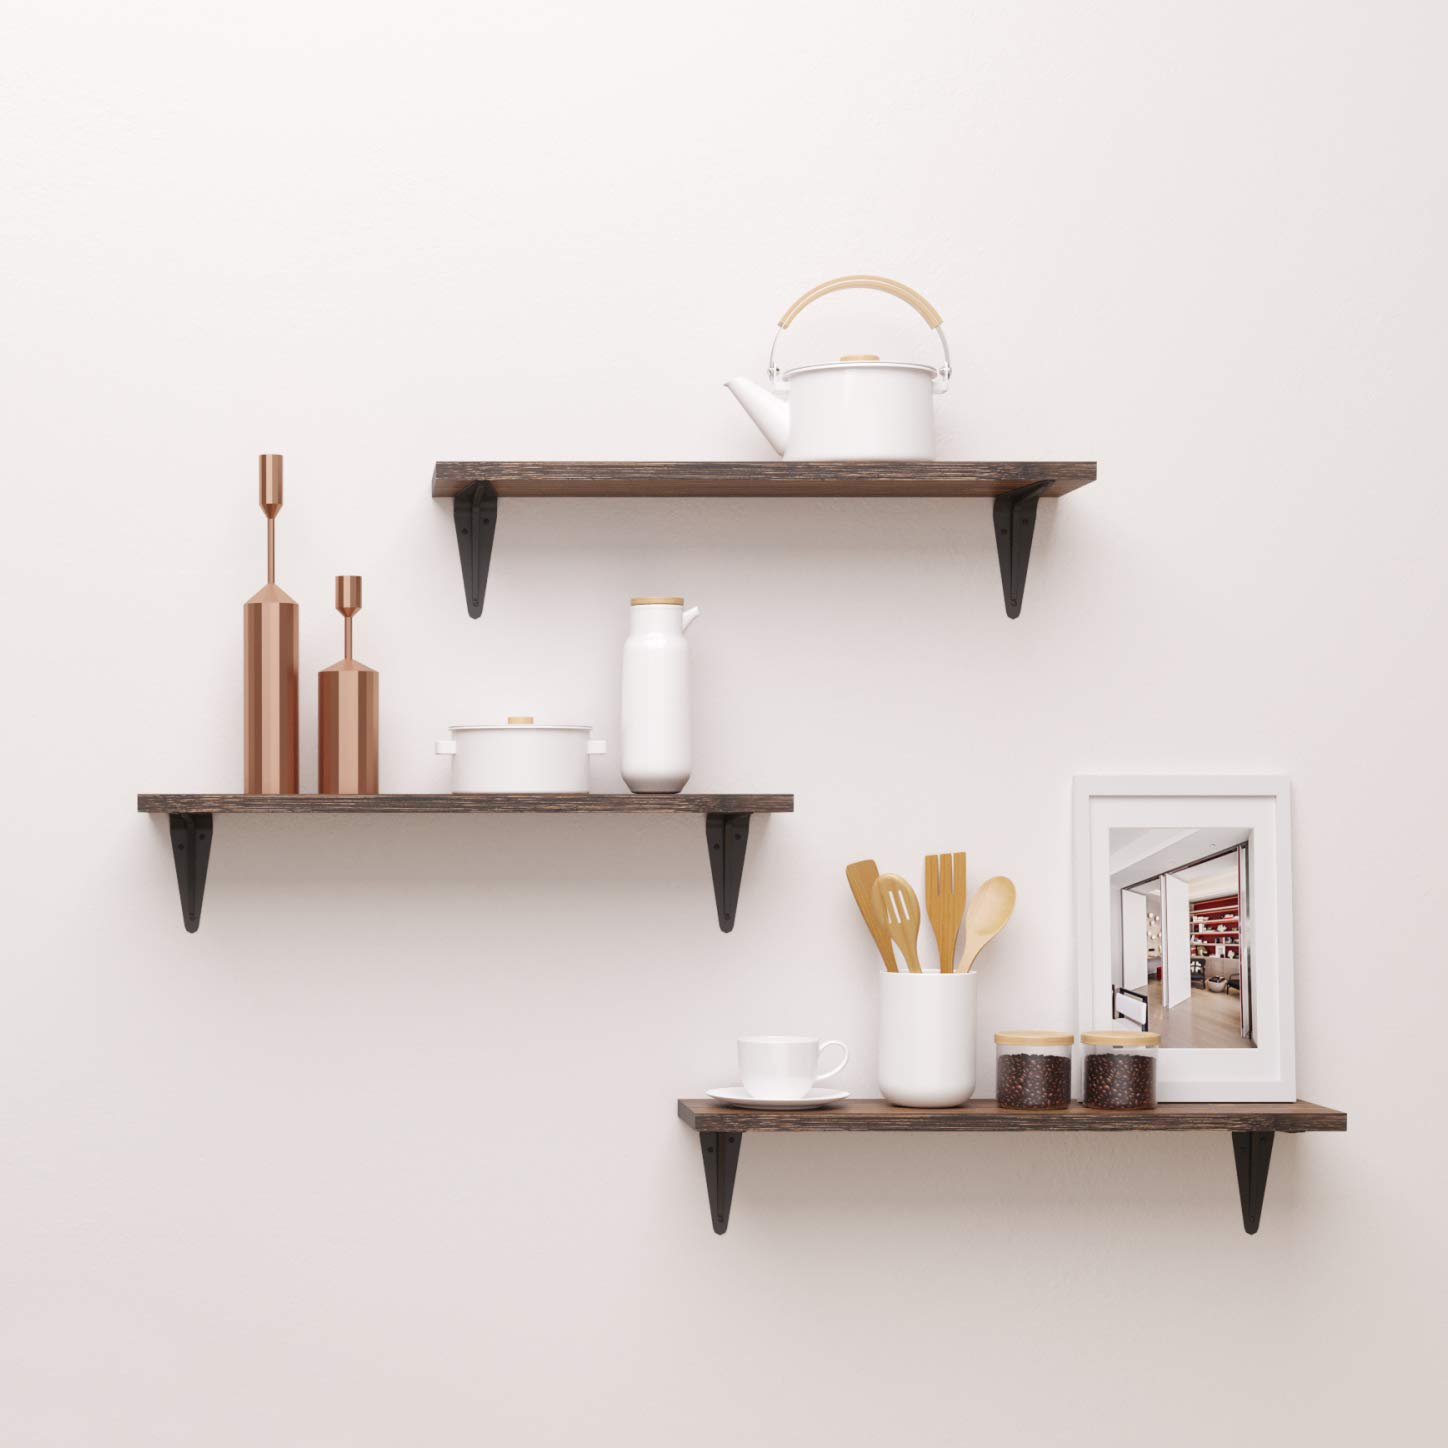 bamfox floating shelves wall shelf set mounted large with storage for bedroom bathroom living room kitchen office home wooden shelving systems best trolley stools reclaimed wood